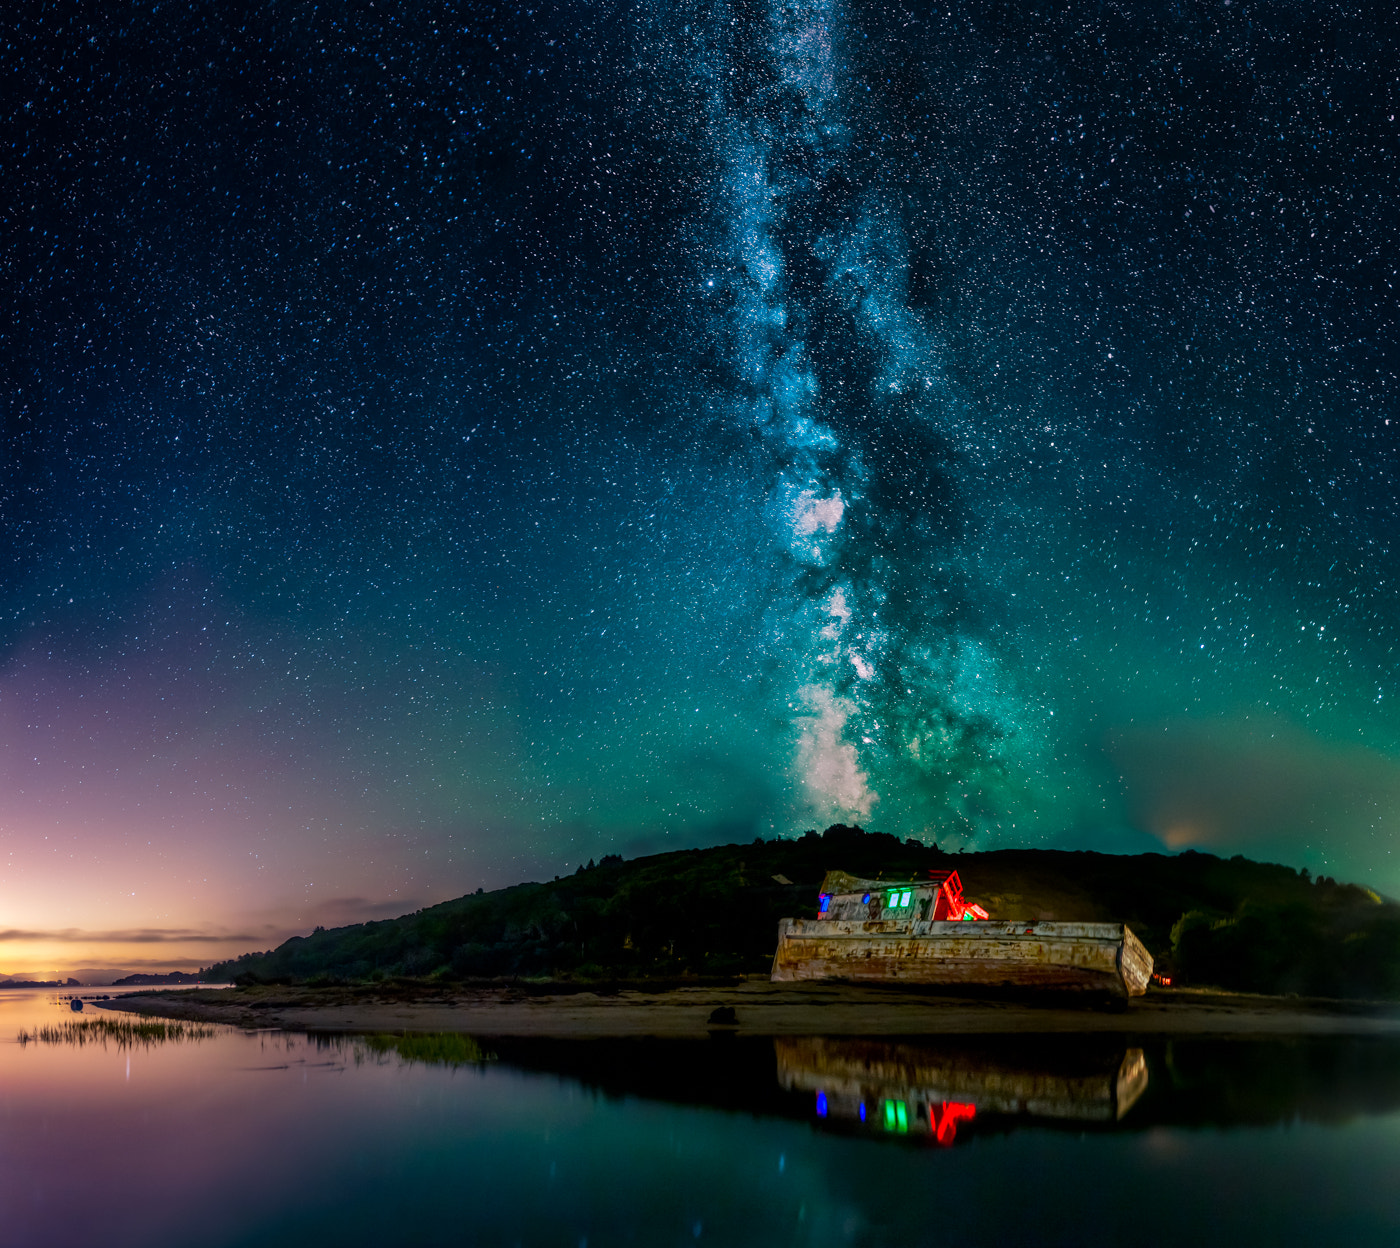 Photograph Jewel of the Night by Alexis Coram on 500px